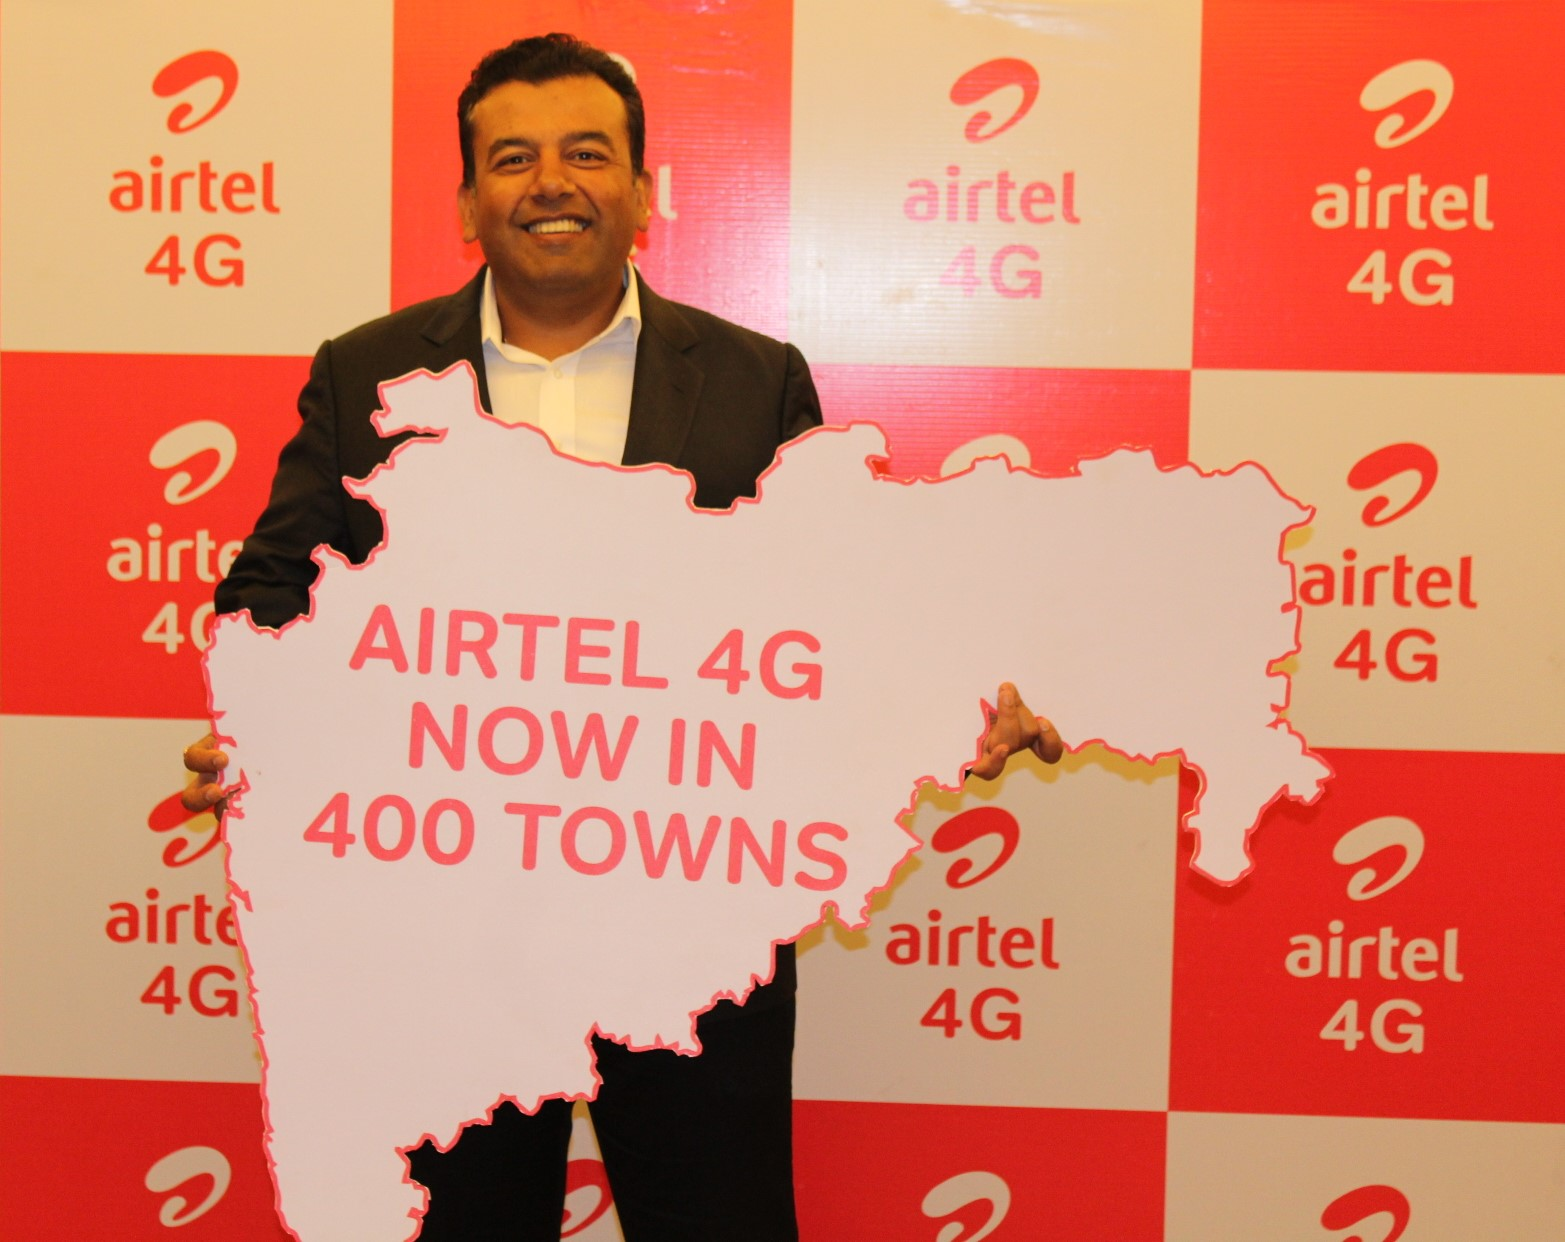 CEO-Rest of Maha & Goa Vidur Rattan announcing the expansion of Airtels 4G network in Rest of Maharashtra & Goa